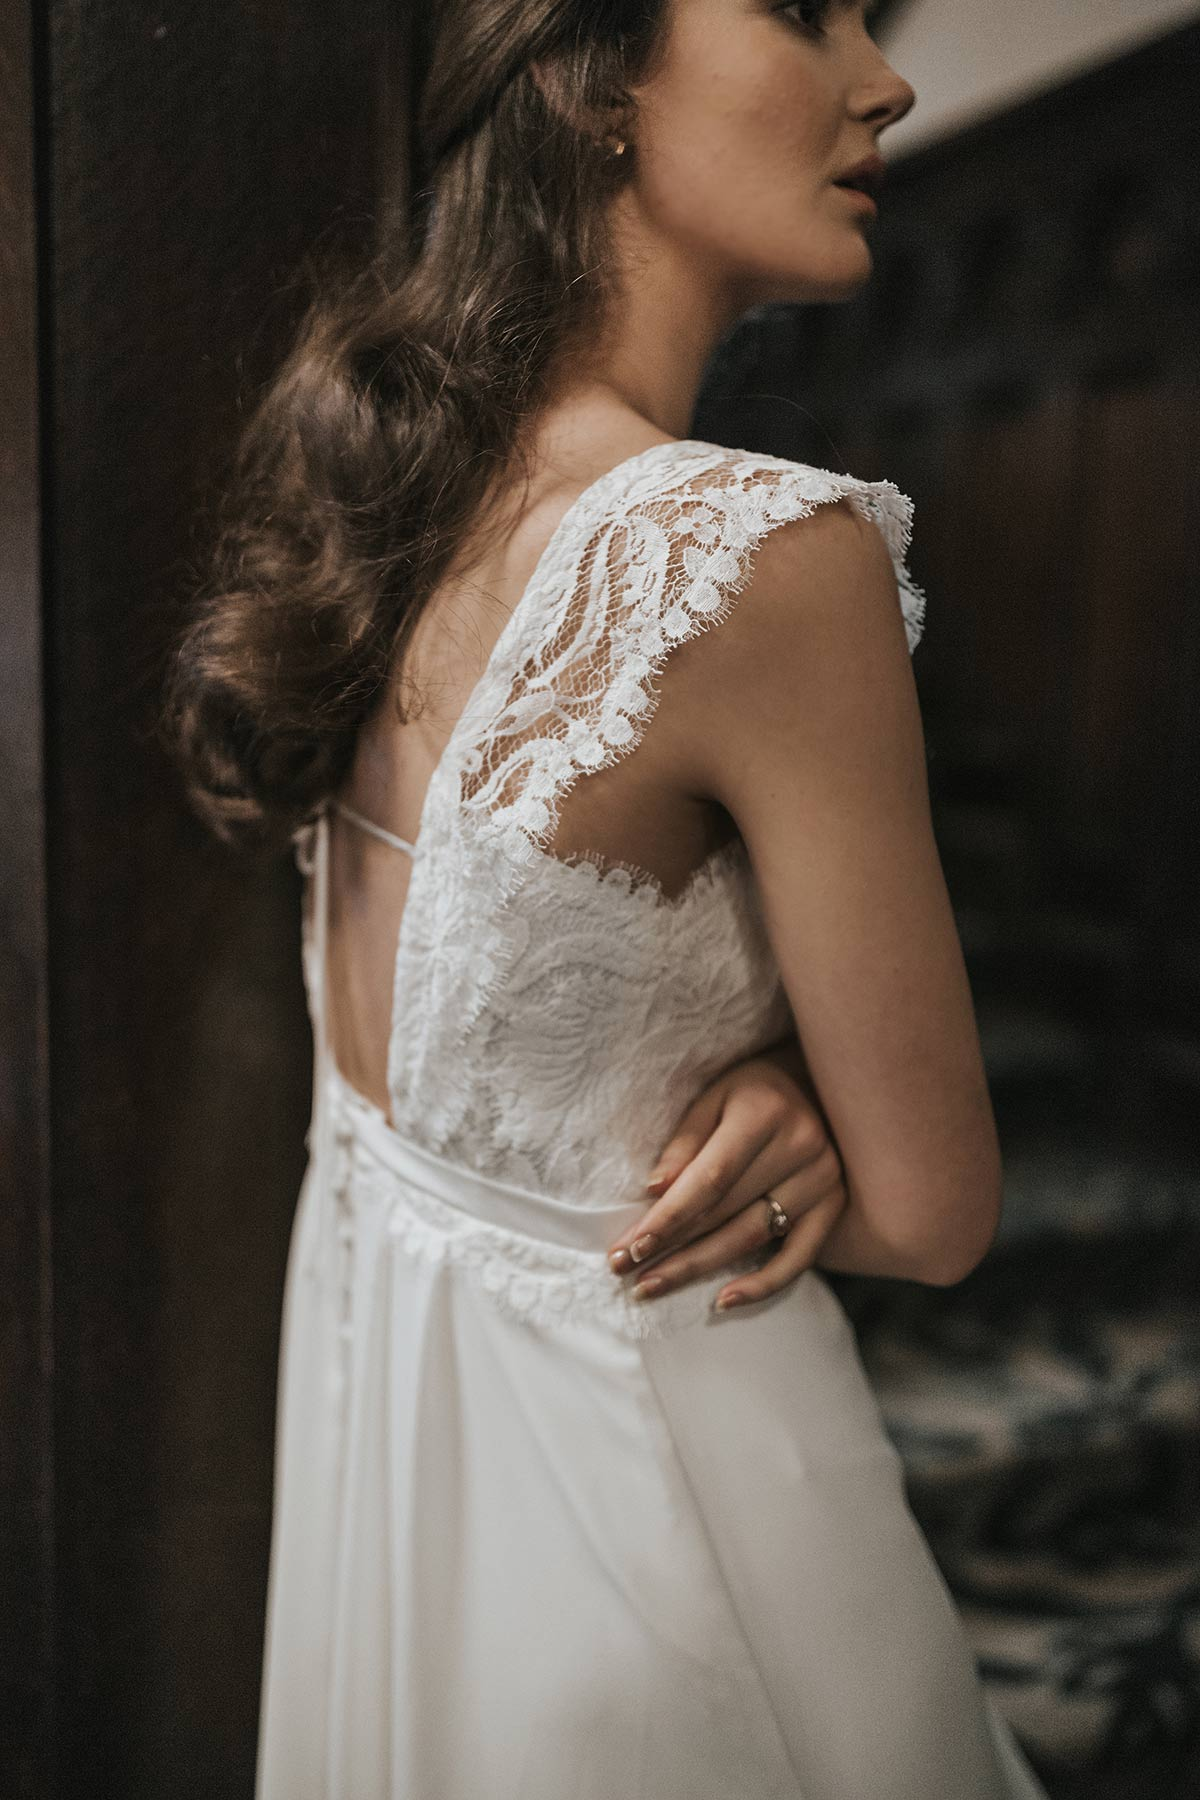 Lavictoire editorial Solange wedding dress open back side lace straps